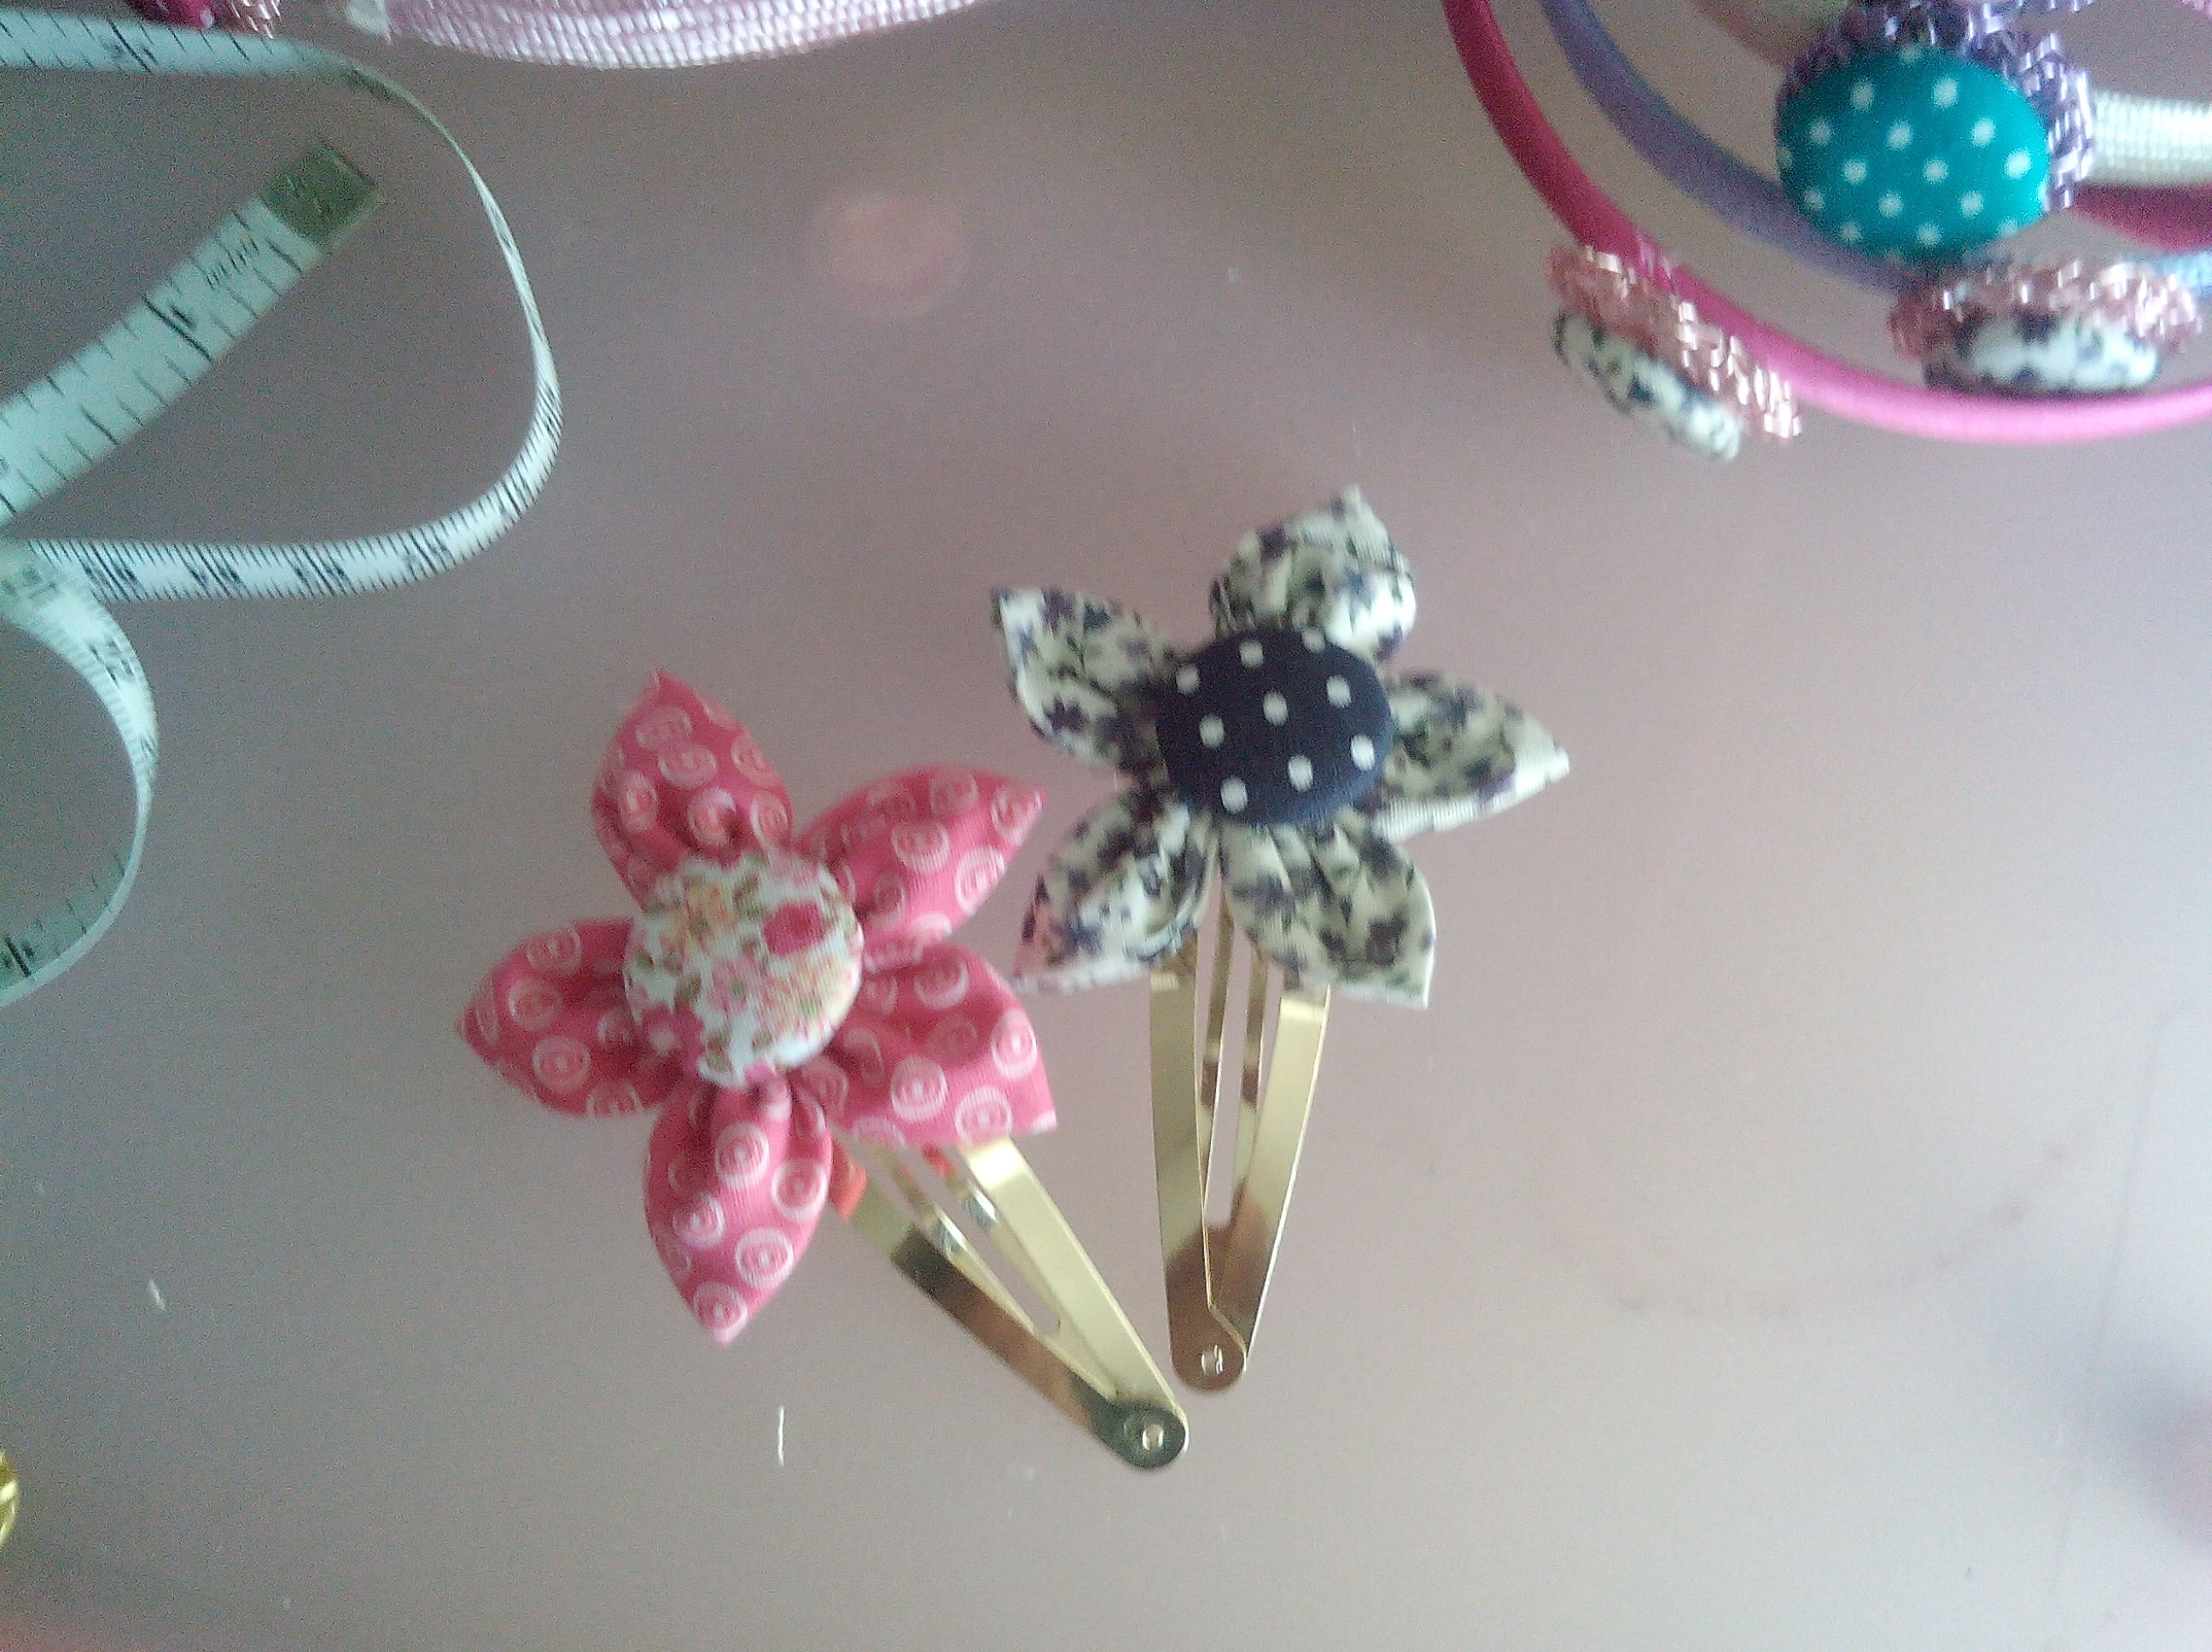 Embroidered hairclips